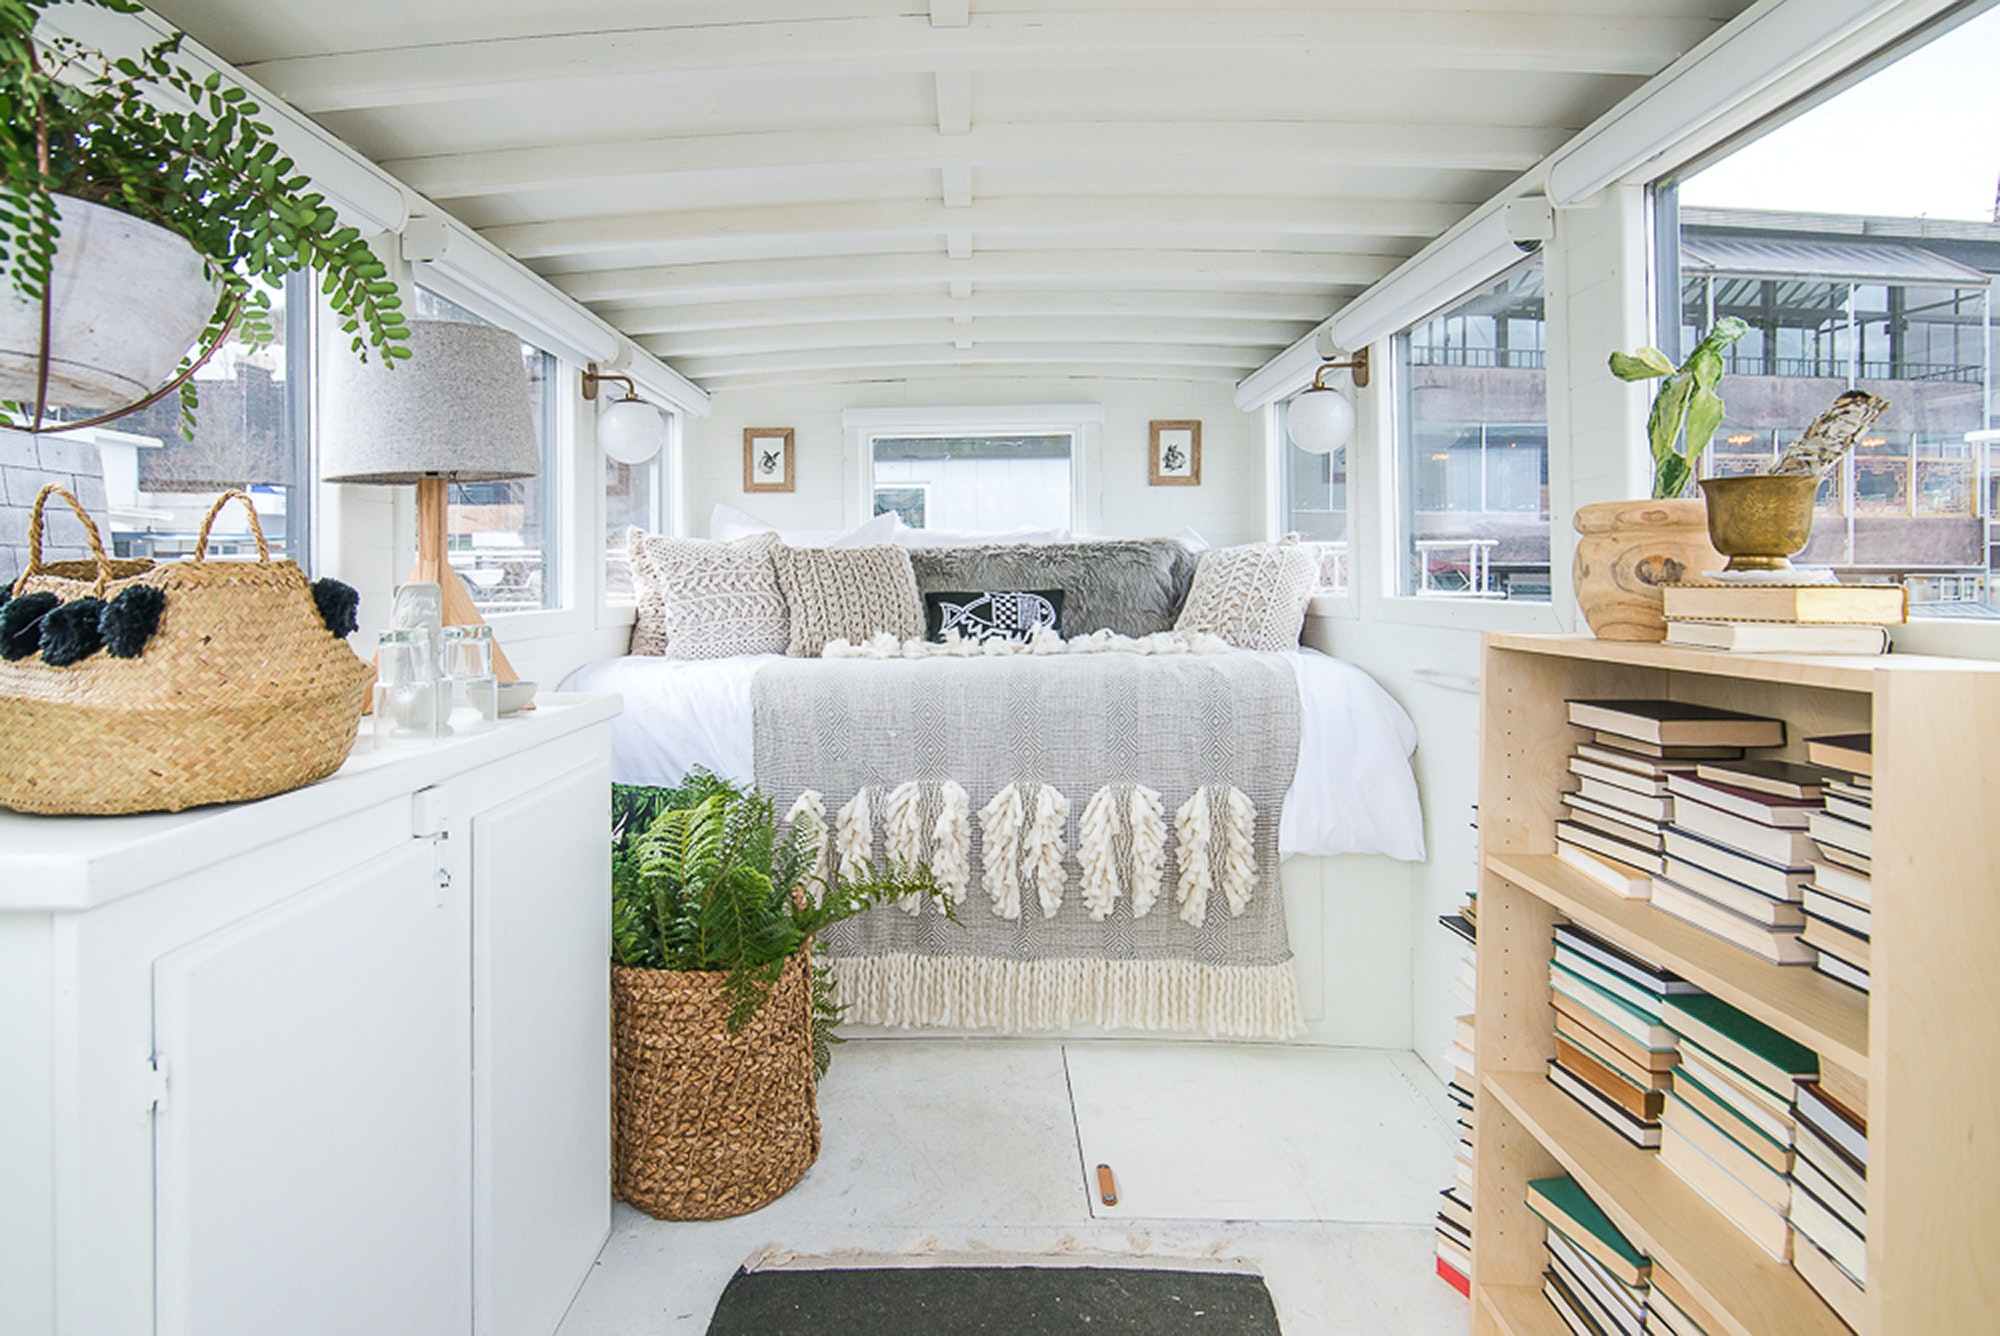 Houseboats are synonymous with Seattle, and a stay at this one puts forth the very best that the experience has to offer.